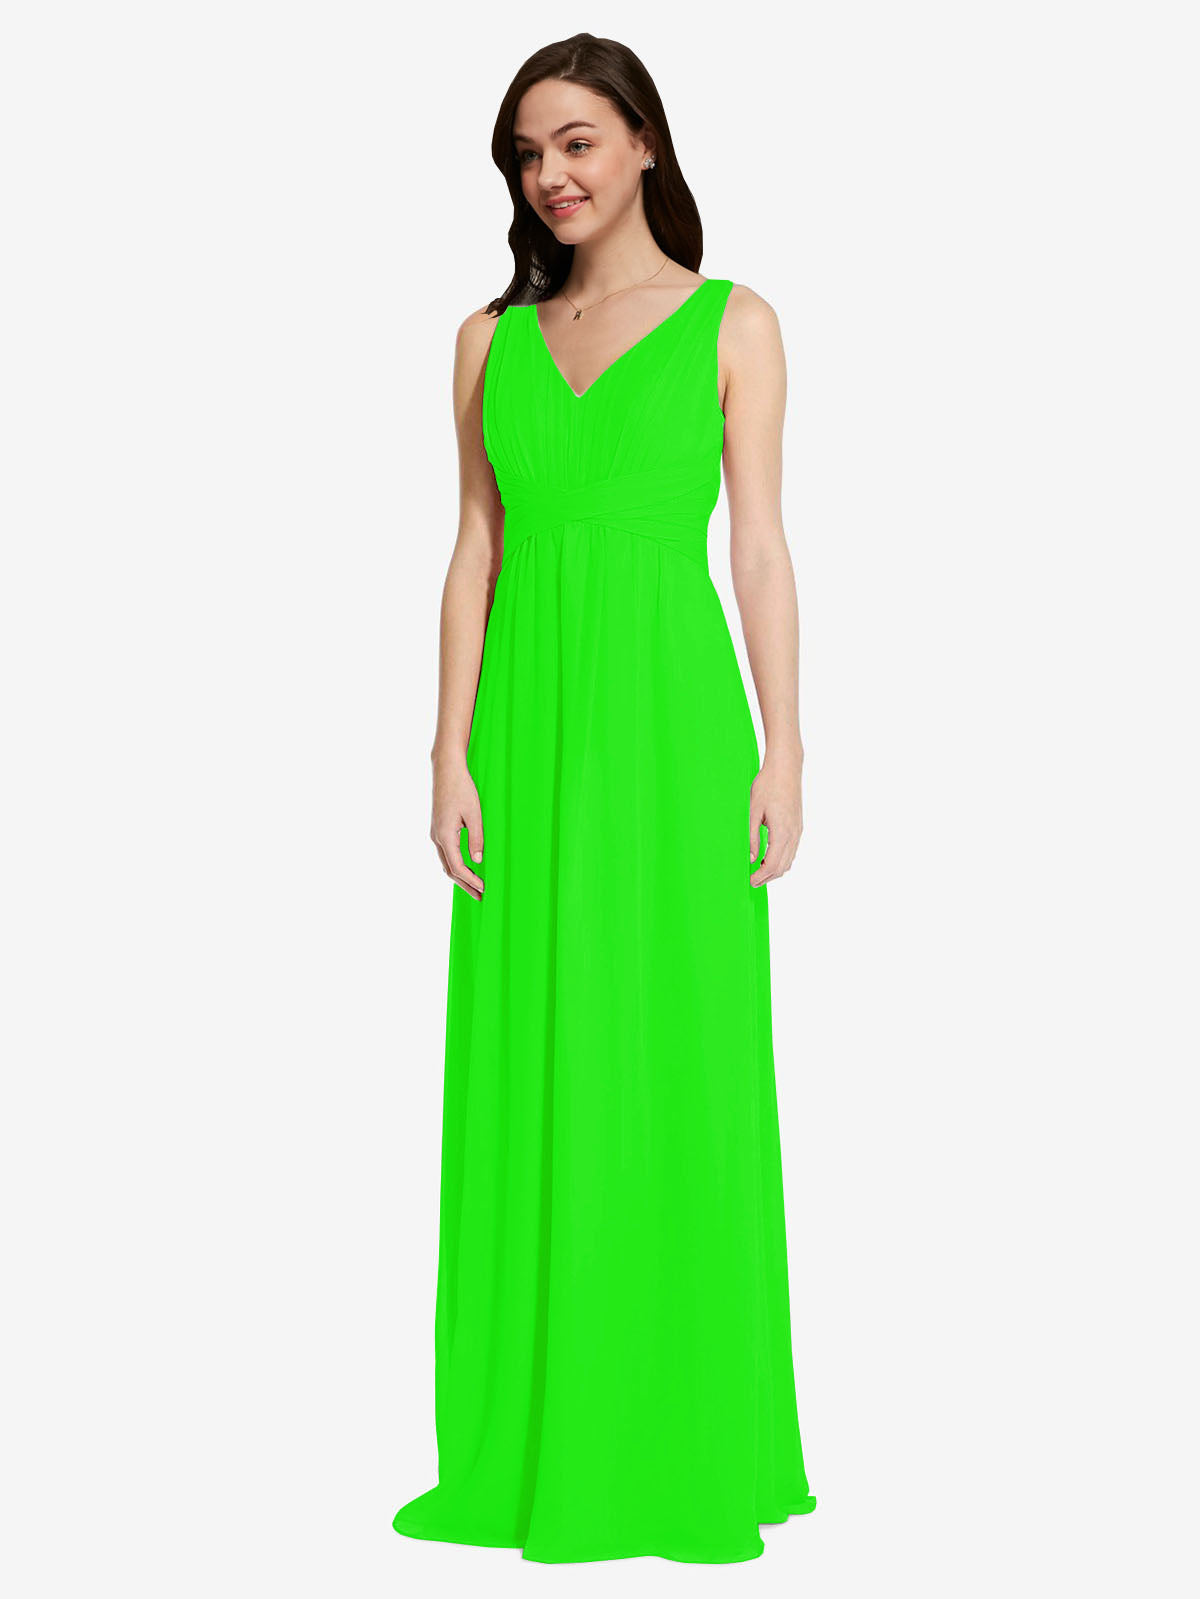 Long A-Line V-Neck Sleeveless Lime Green Chiffon Bridesmaid Dress Auckland